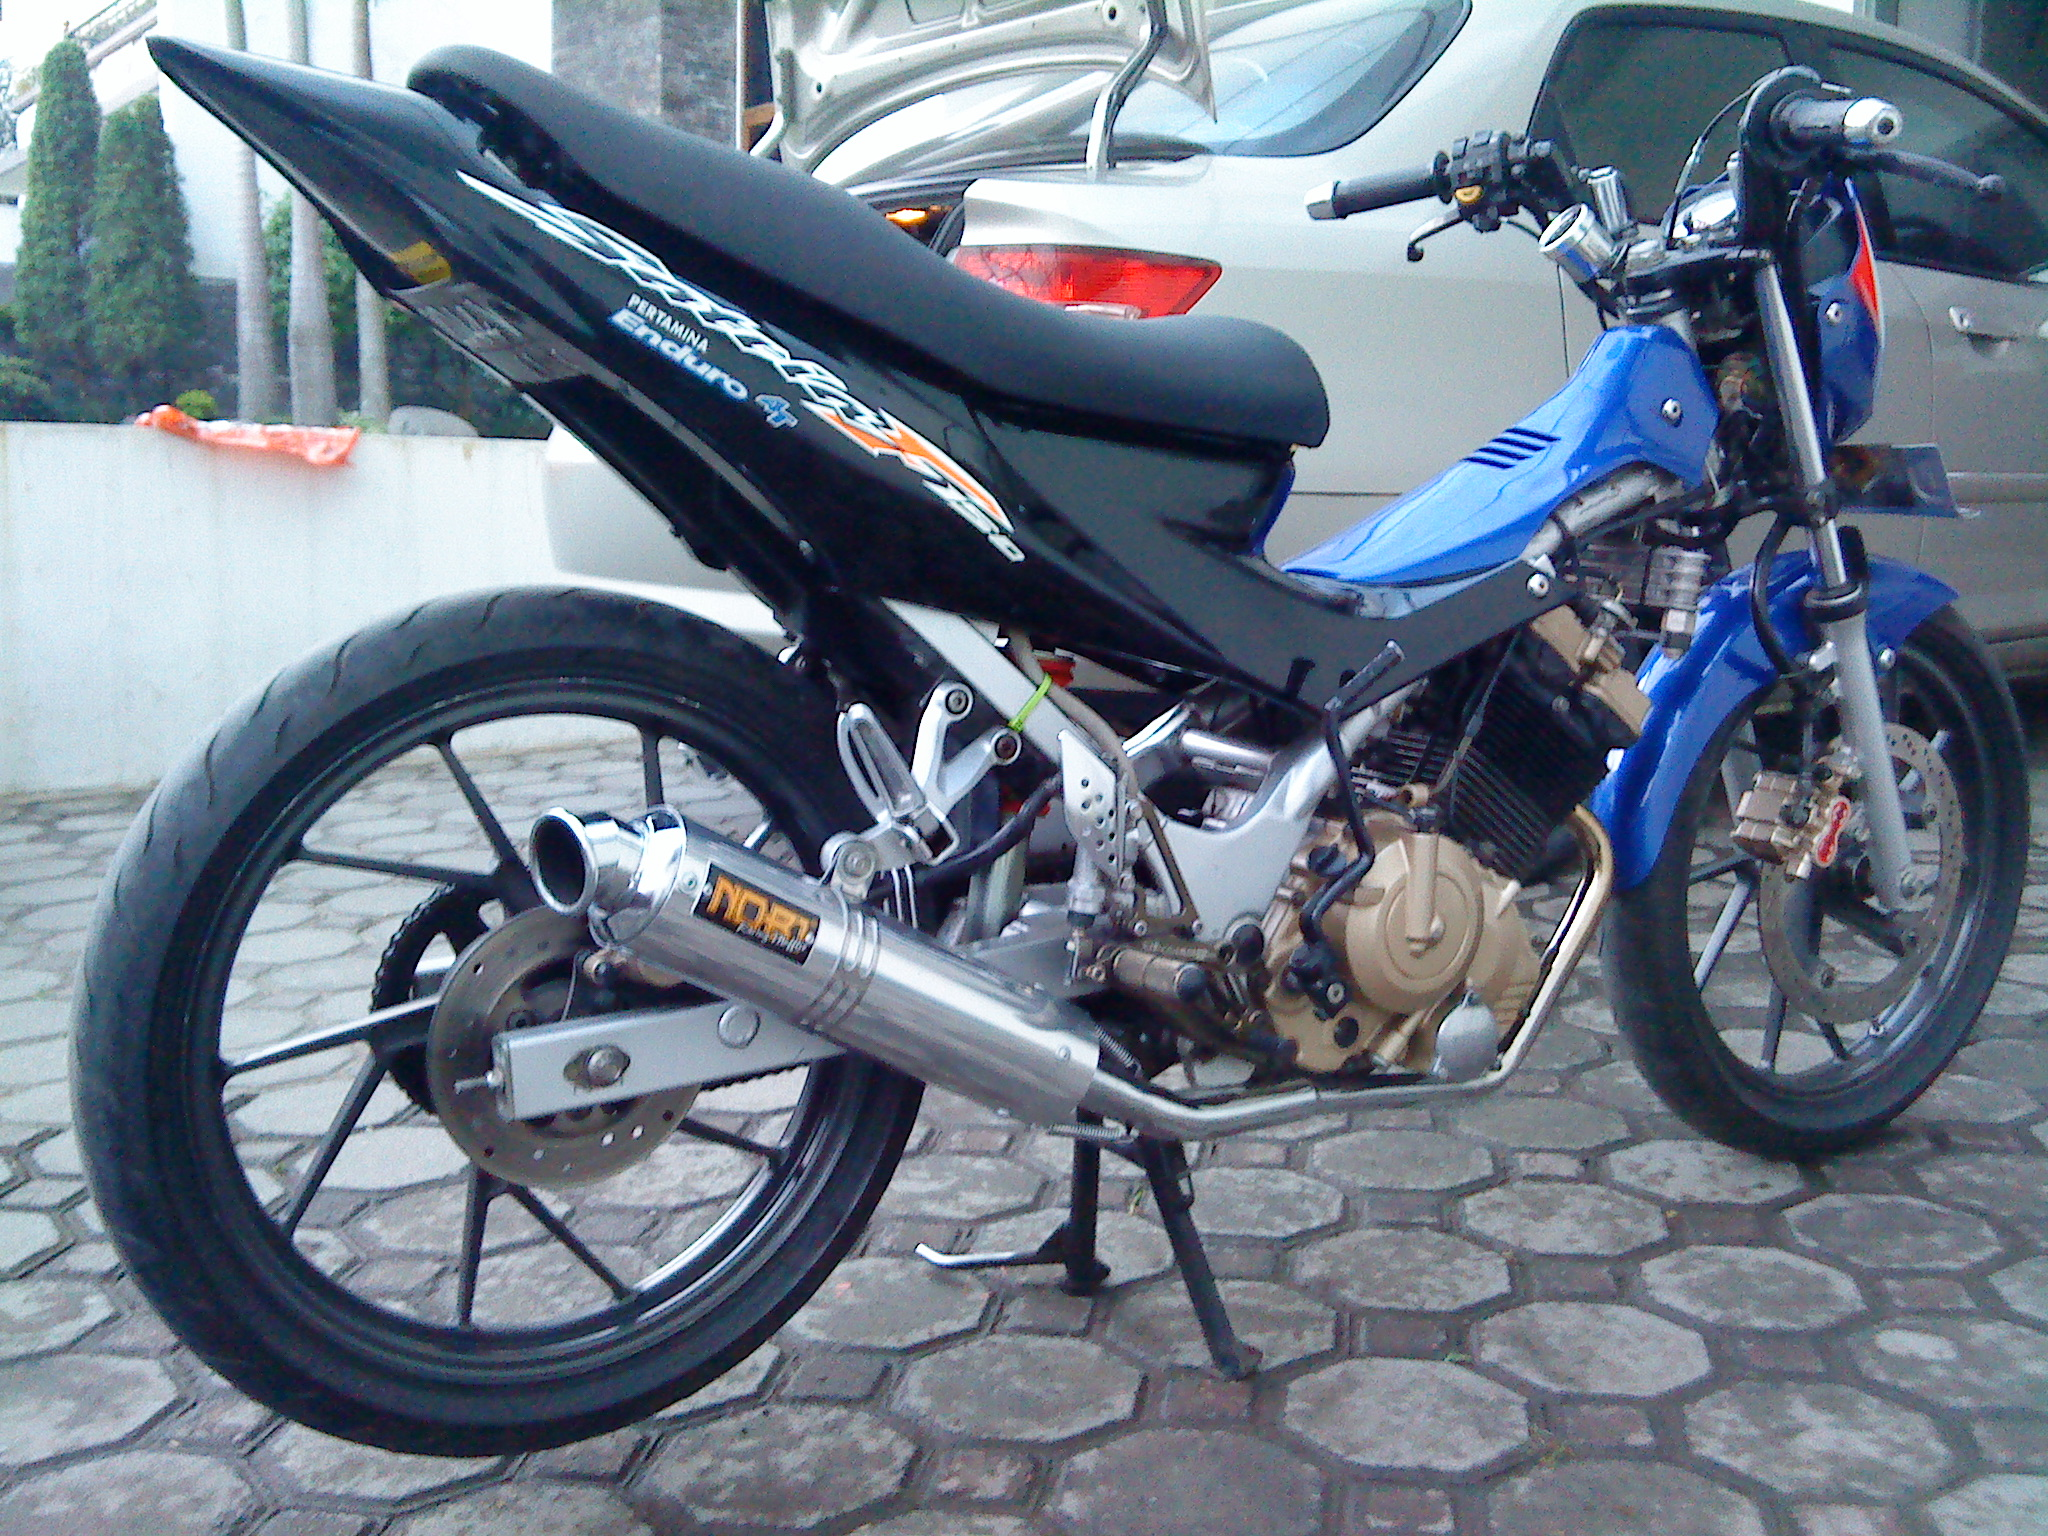 modifications Suzuki Satria fu